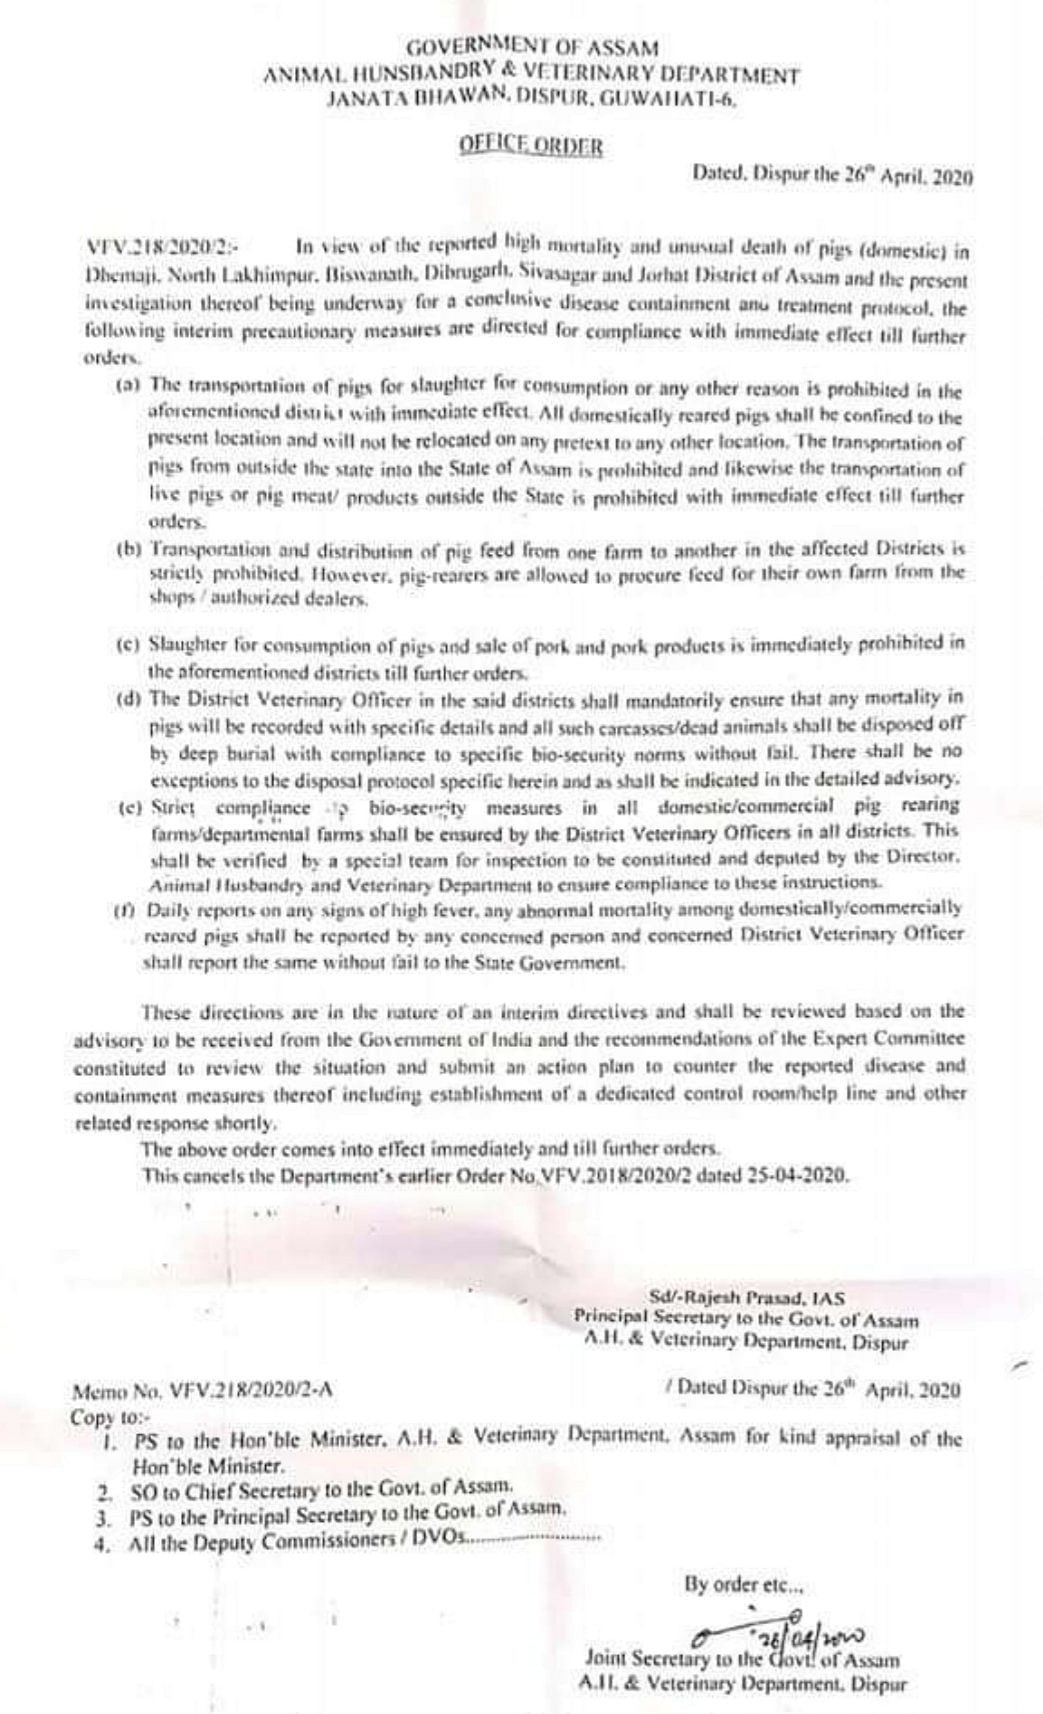 The order issued by Assam's animal husbandry and veterinary department